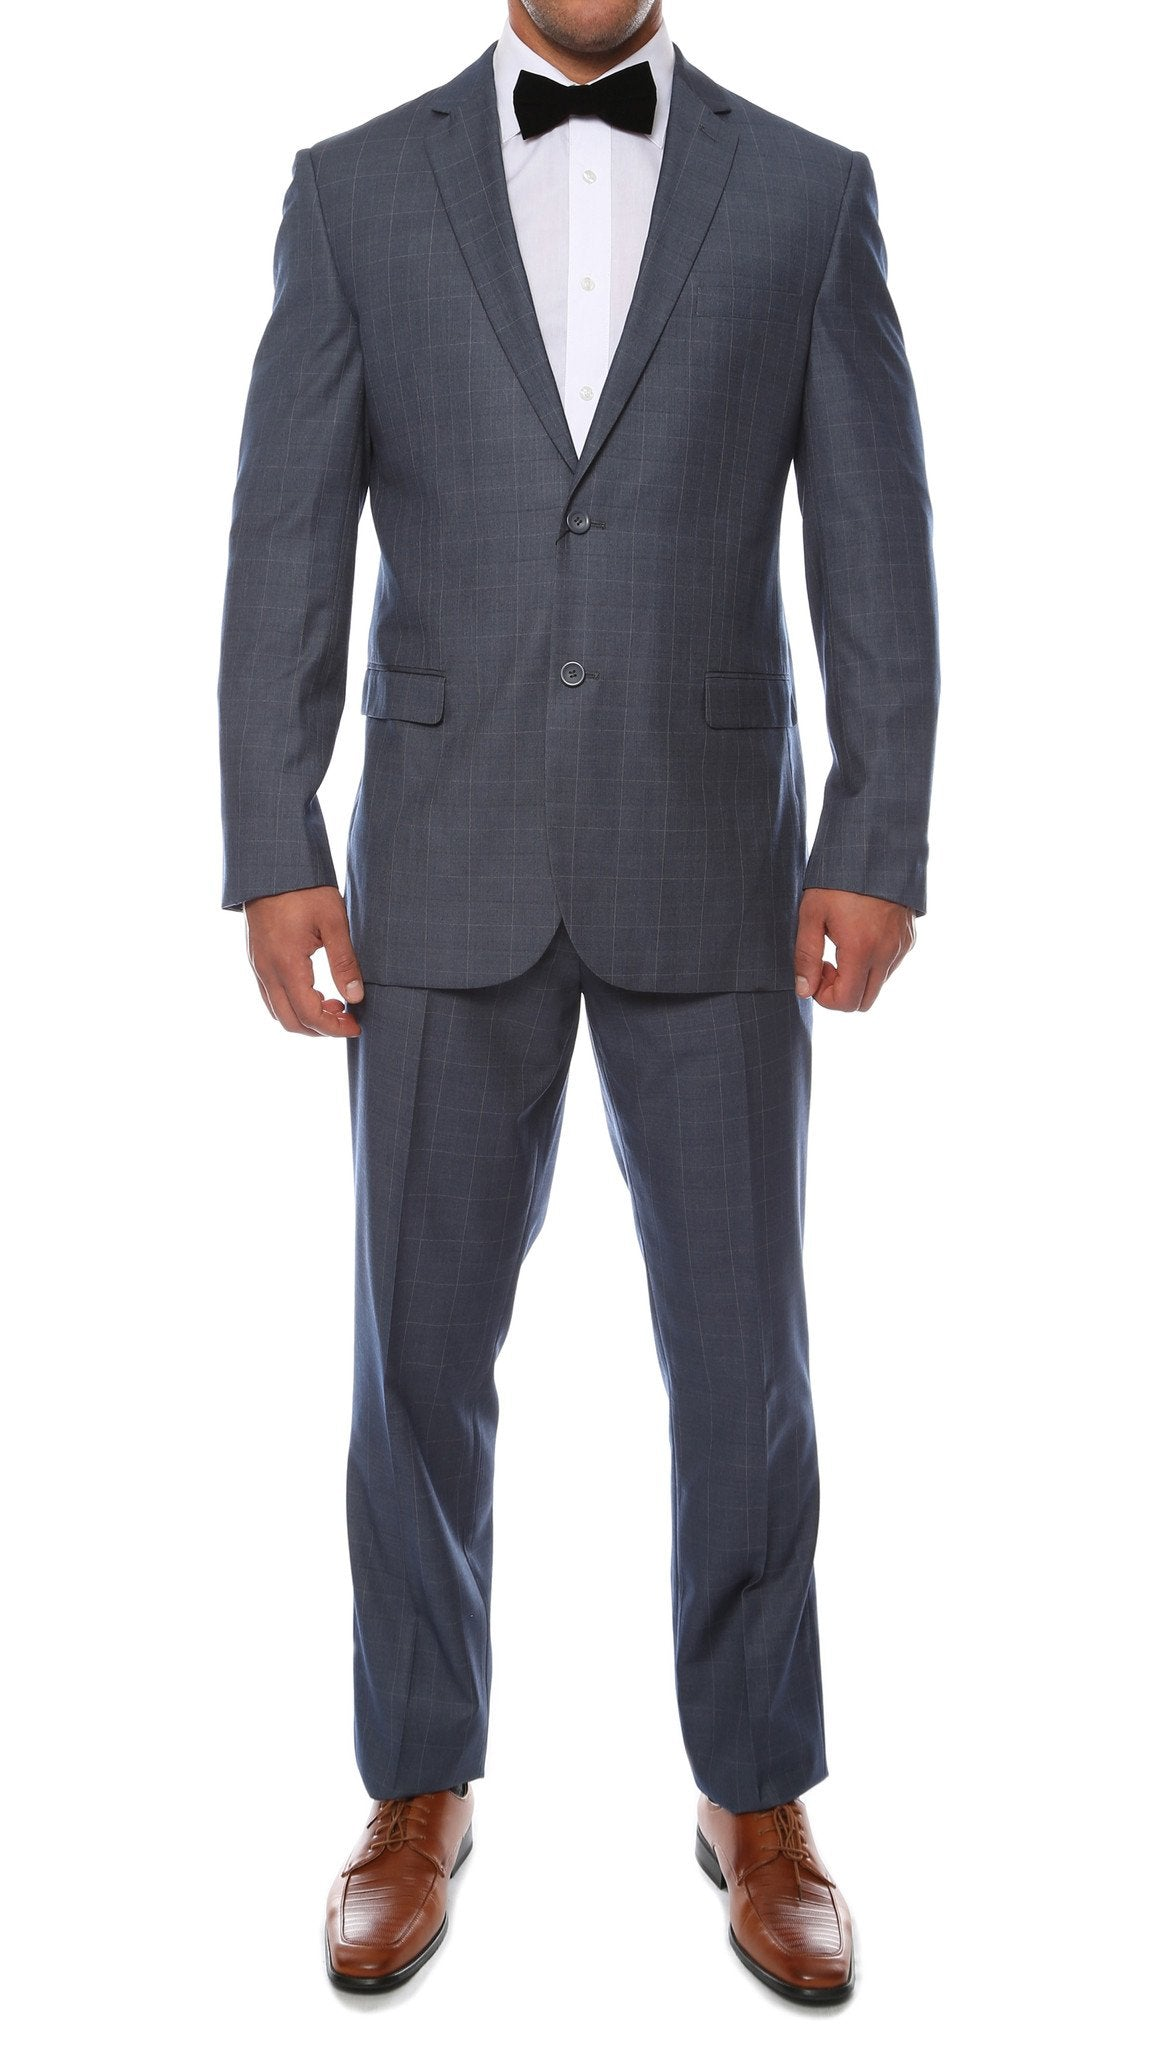 Moda Plaid Check Blue 2pc Slim Fit Suit - Giorgio's Menswear